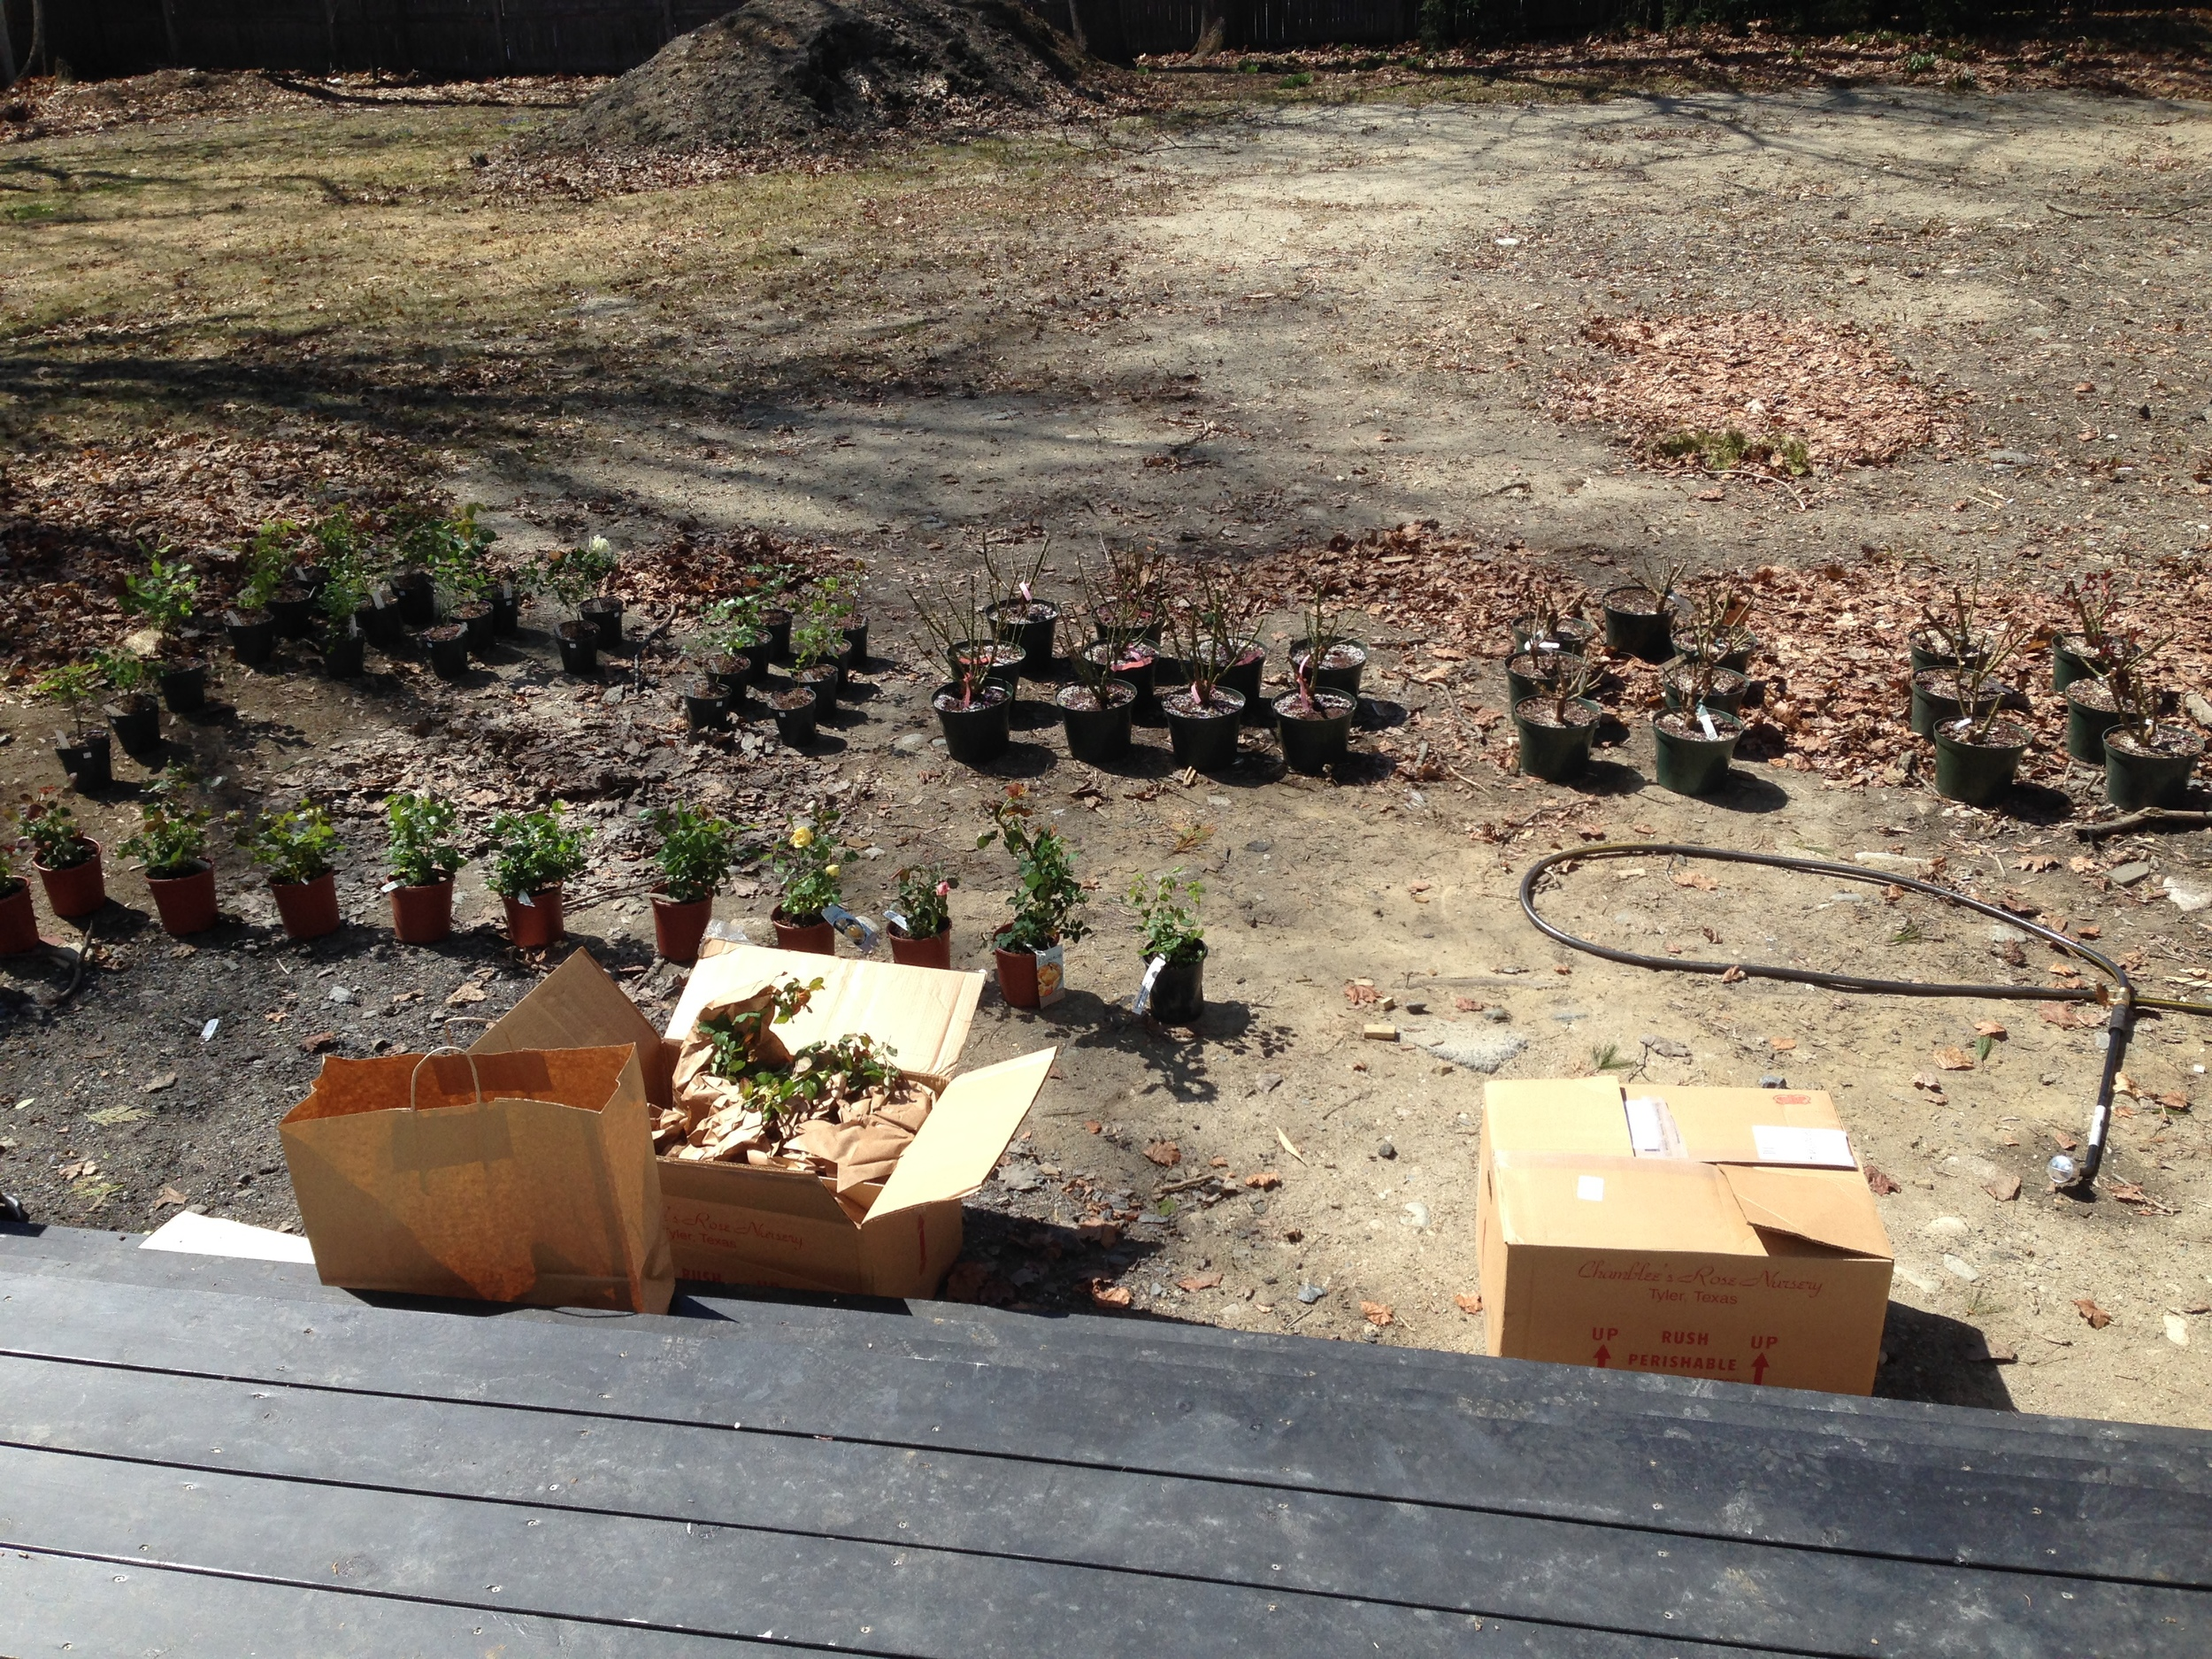 Spent this sunny day potting up roses for the new garden!  This is NOT their final destination in the garden... just a staging area off the back deck so I can easily keep them watered until they get into the ground.